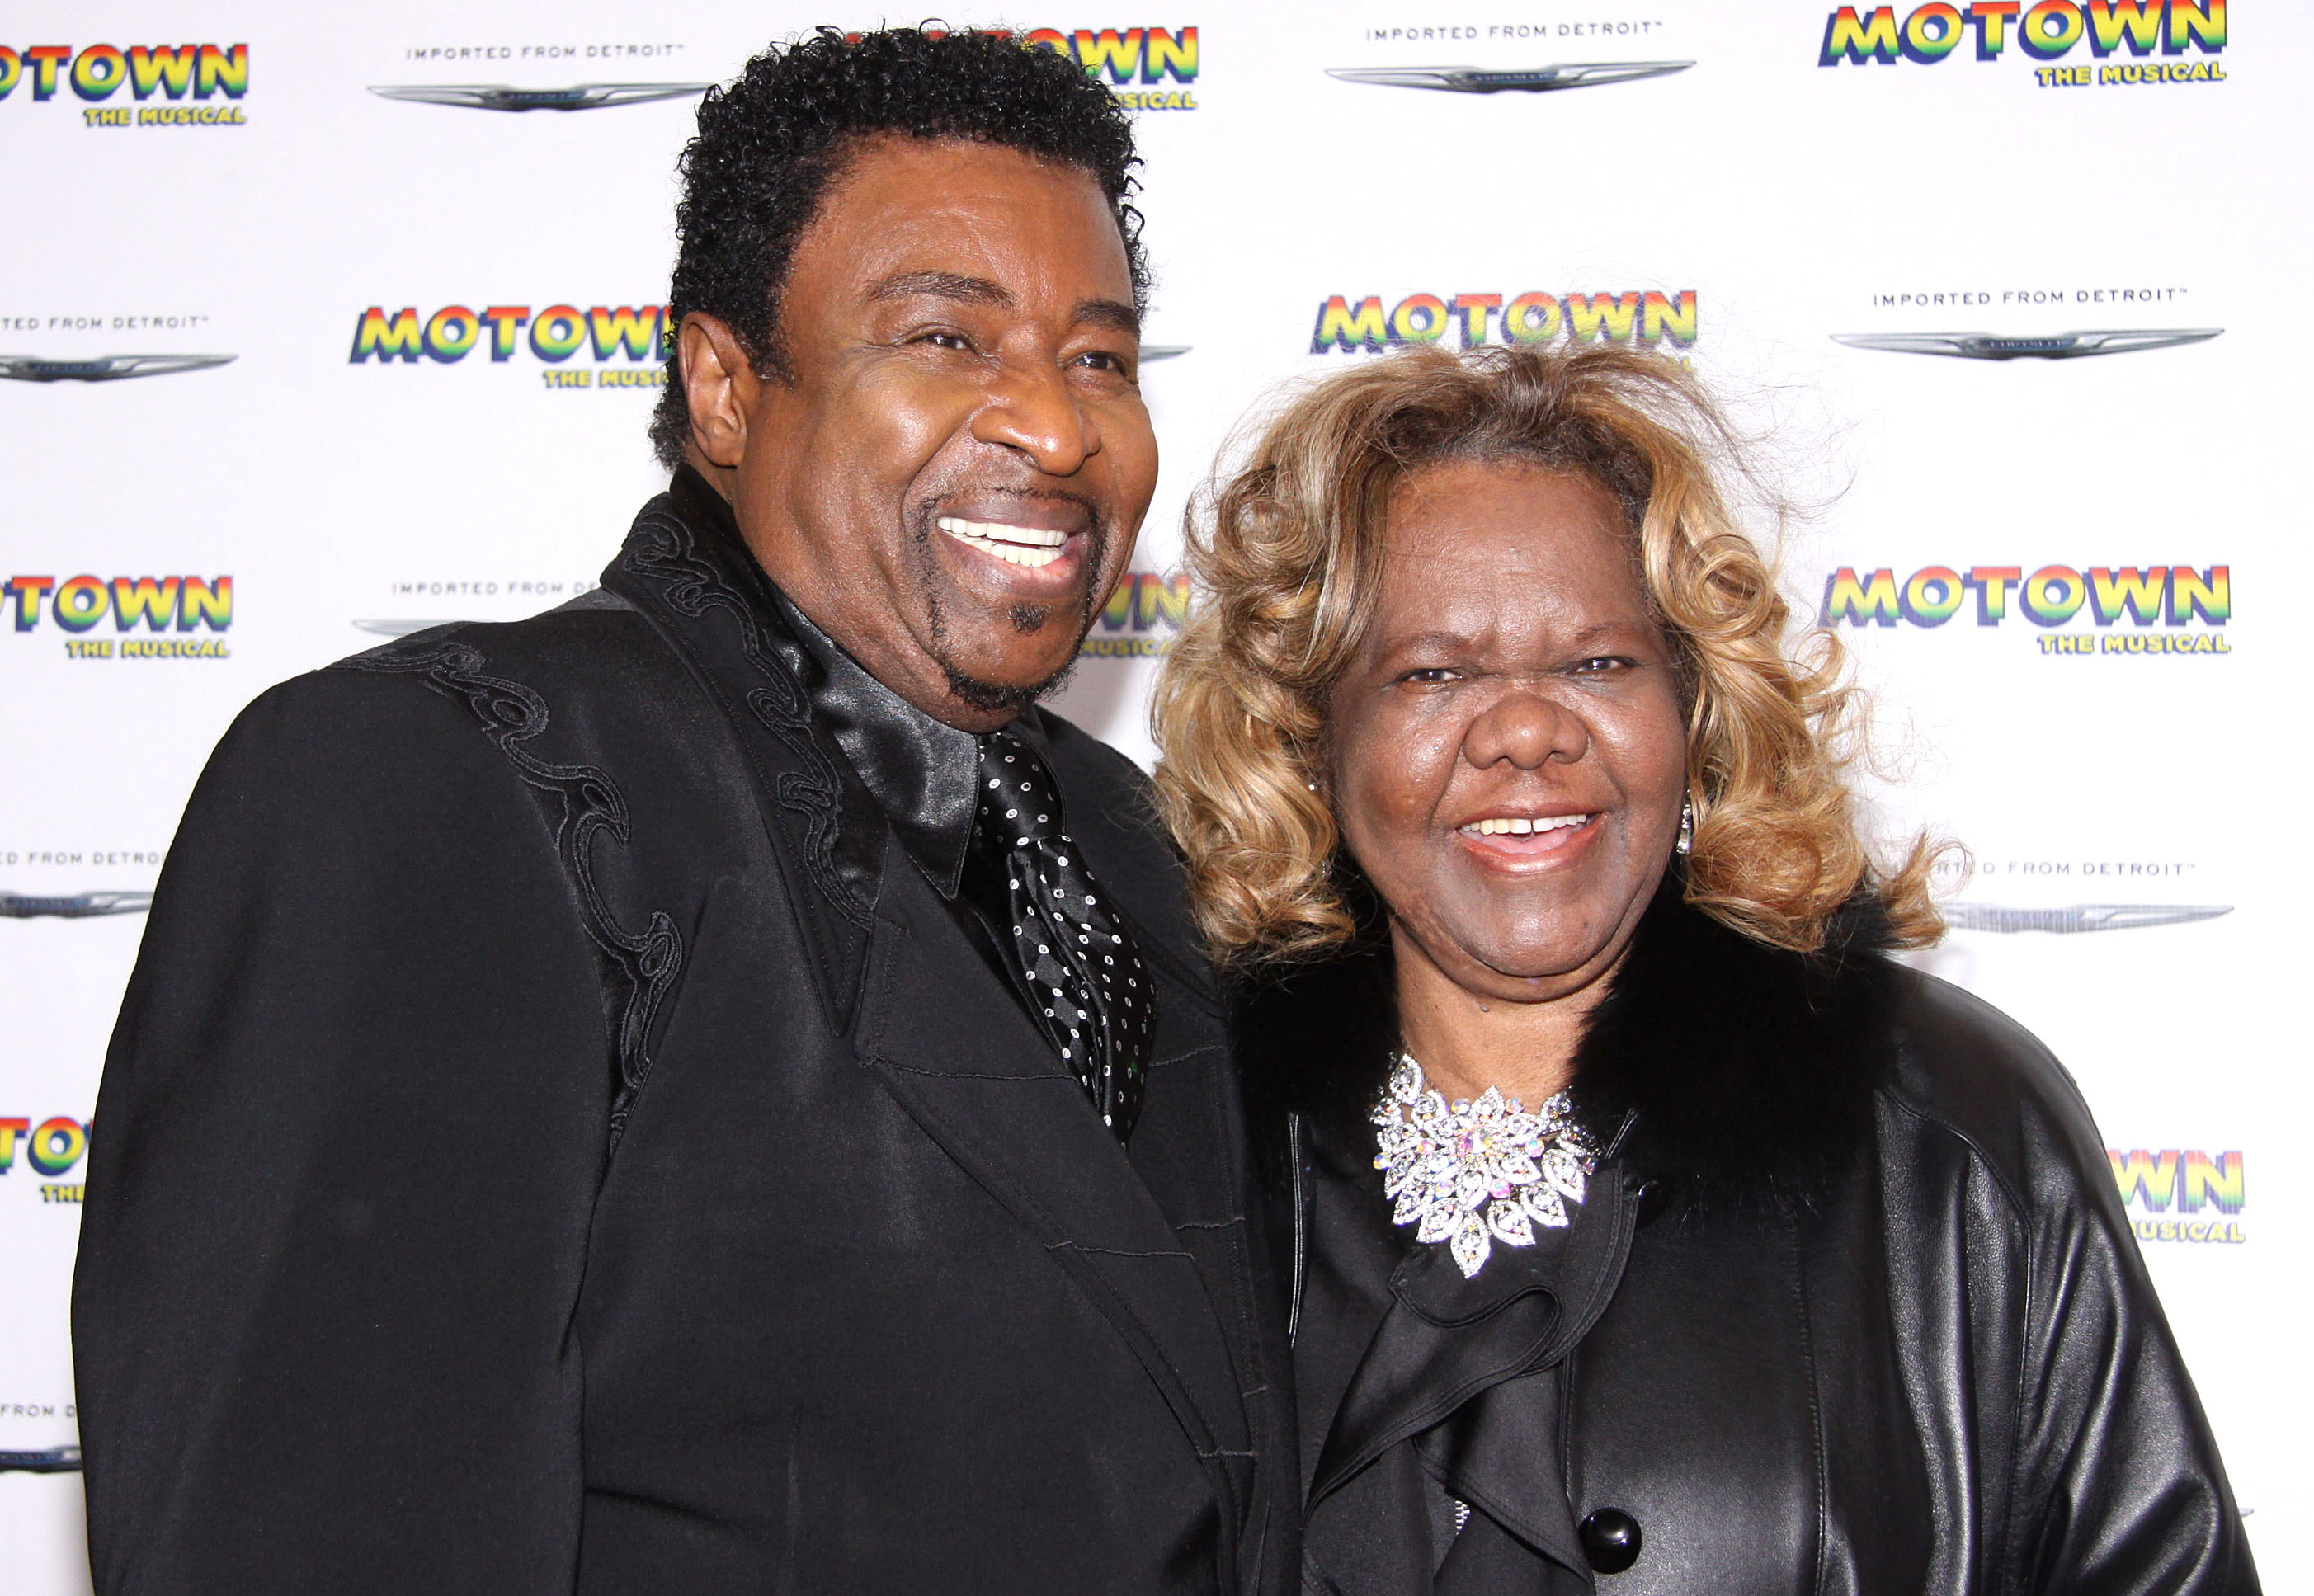 Broadway's Motown: The Musical family night celebration at the Lunt Fontanne Theatre - Arrivals  Featuring: Dennis Edwards, Janie Bradford Where: New York, United States When: 05 Apr 2013 Credit: Joseph Marzullo/WENN.com